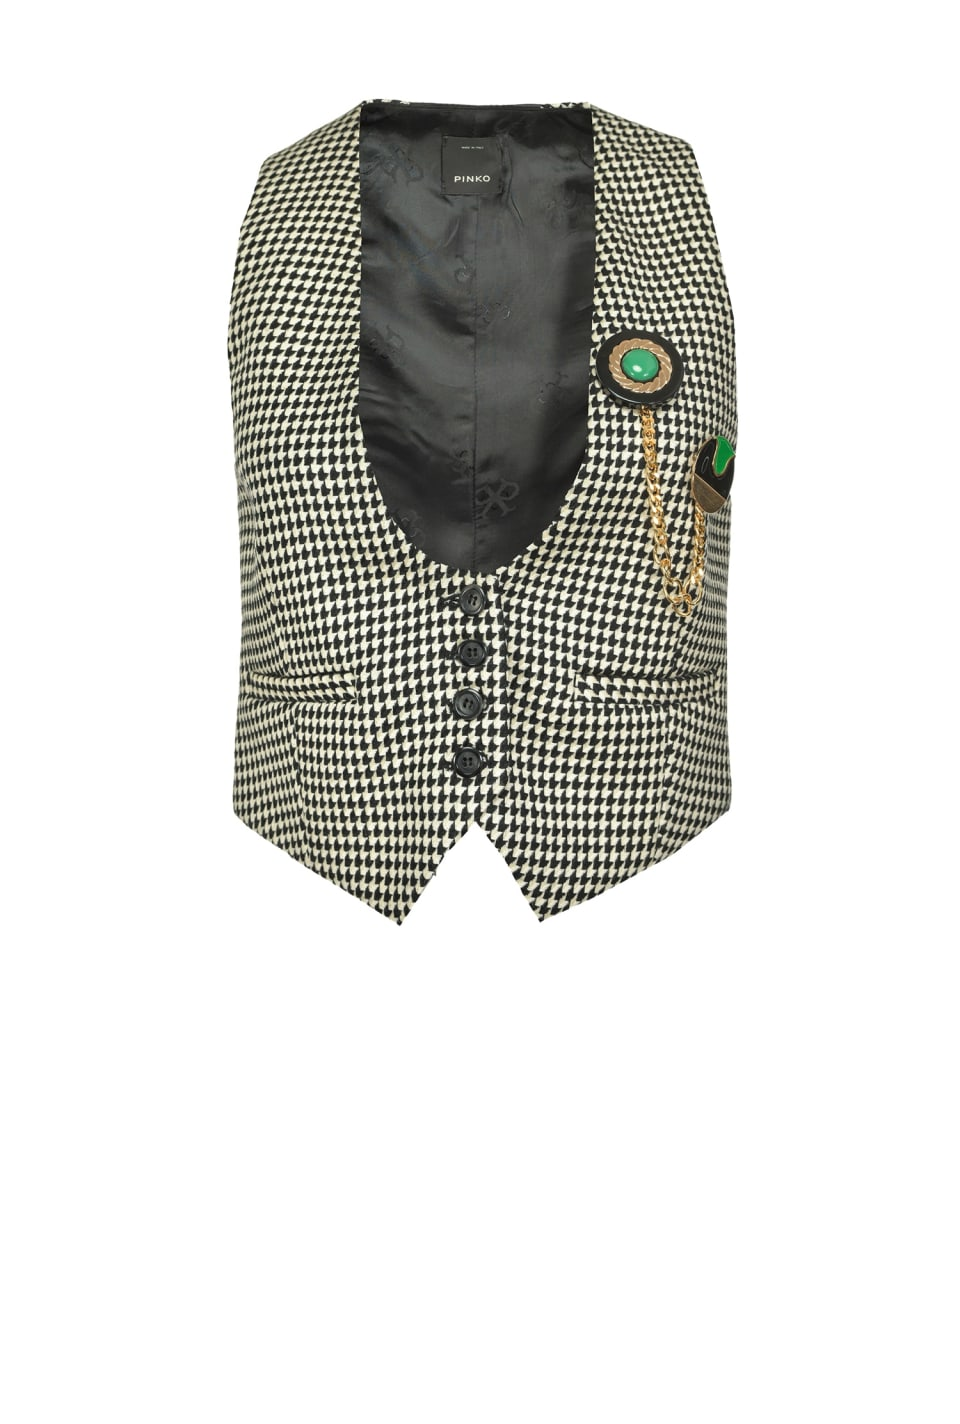 Houndstooth waistcoat with brooch - Pinko